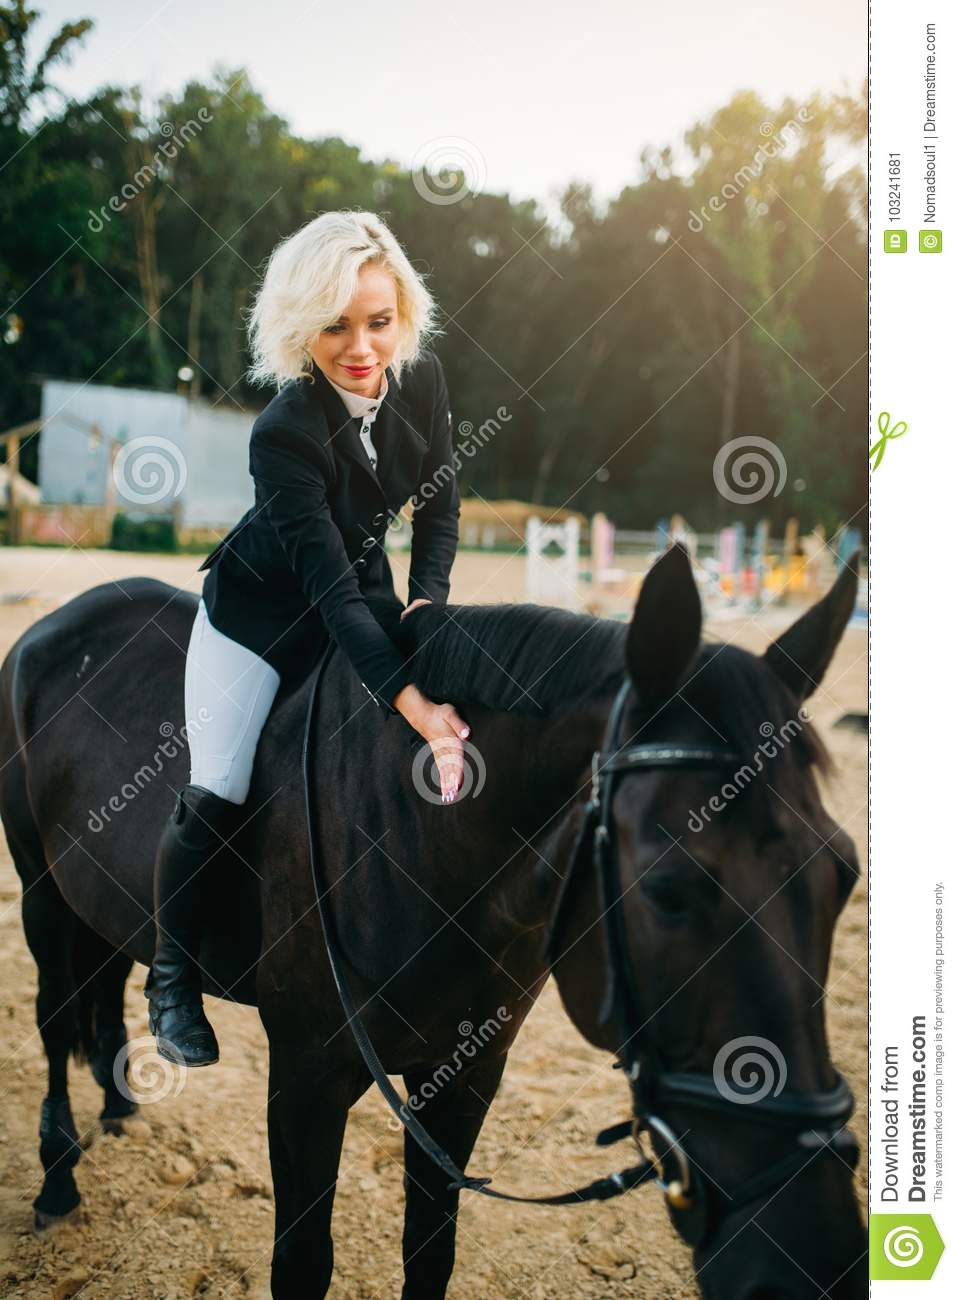 Equestrian Sport Woman Poses On Horseback Stock Image Image Of Friendship Animal 103241681